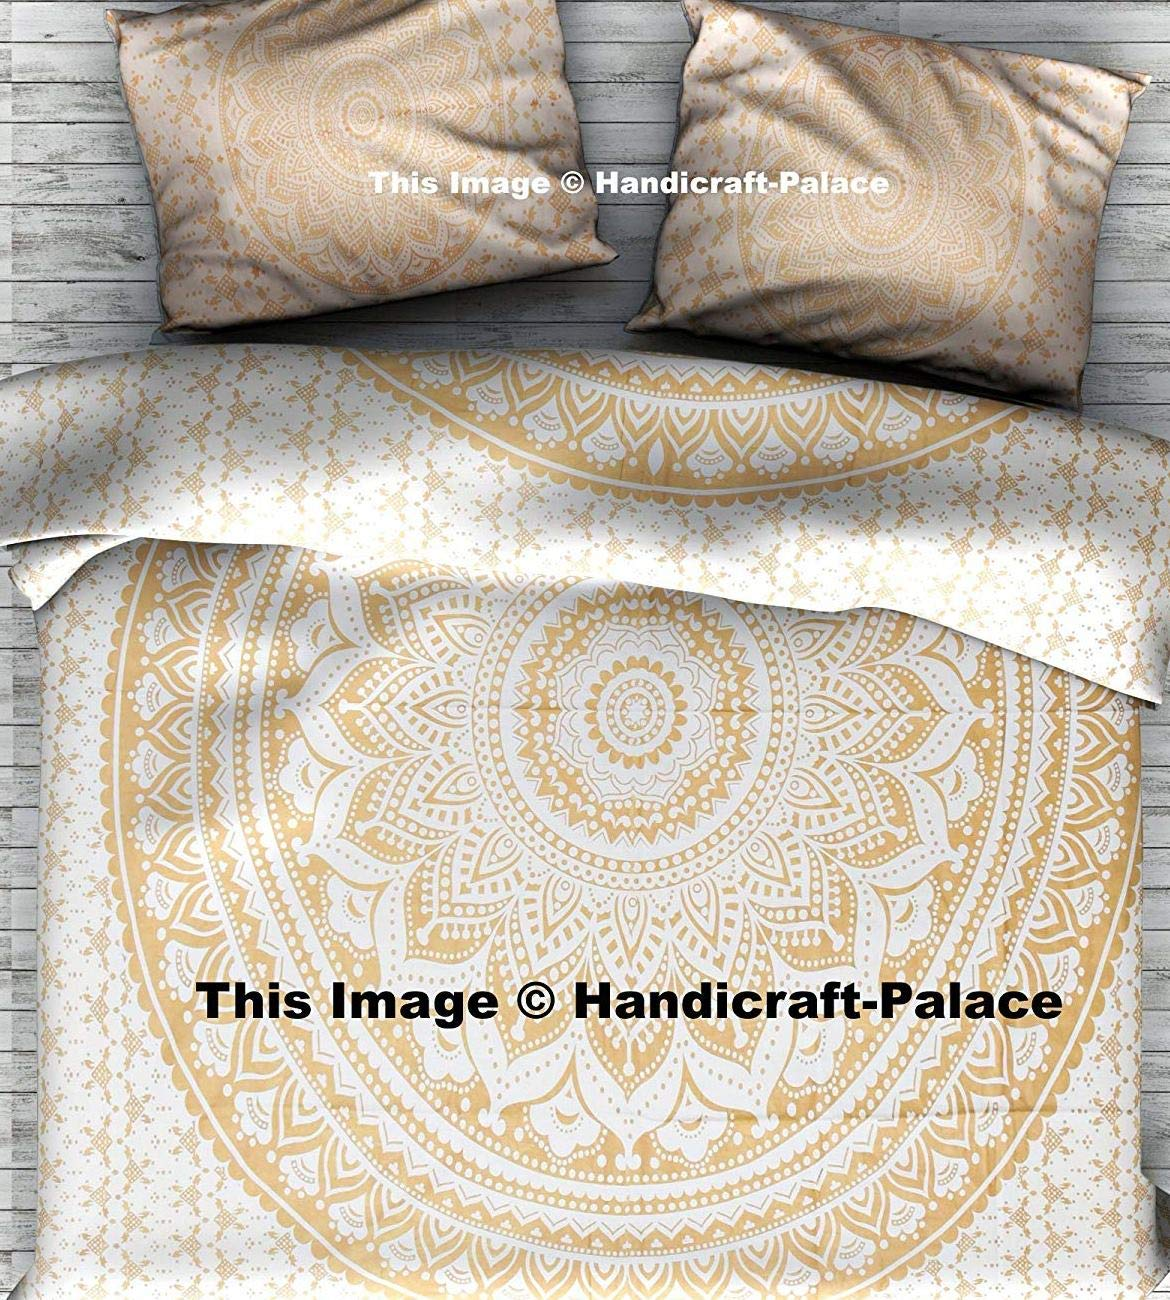 Gold Ombre Mandala Duvet Cover By ''Handicraft-Palace'' ,Boho Queen Duvet Cover, Bohemian Bedspread Ethnic Cotton Handmade With Pillow Case by Handicraft-Palace (Image #1)